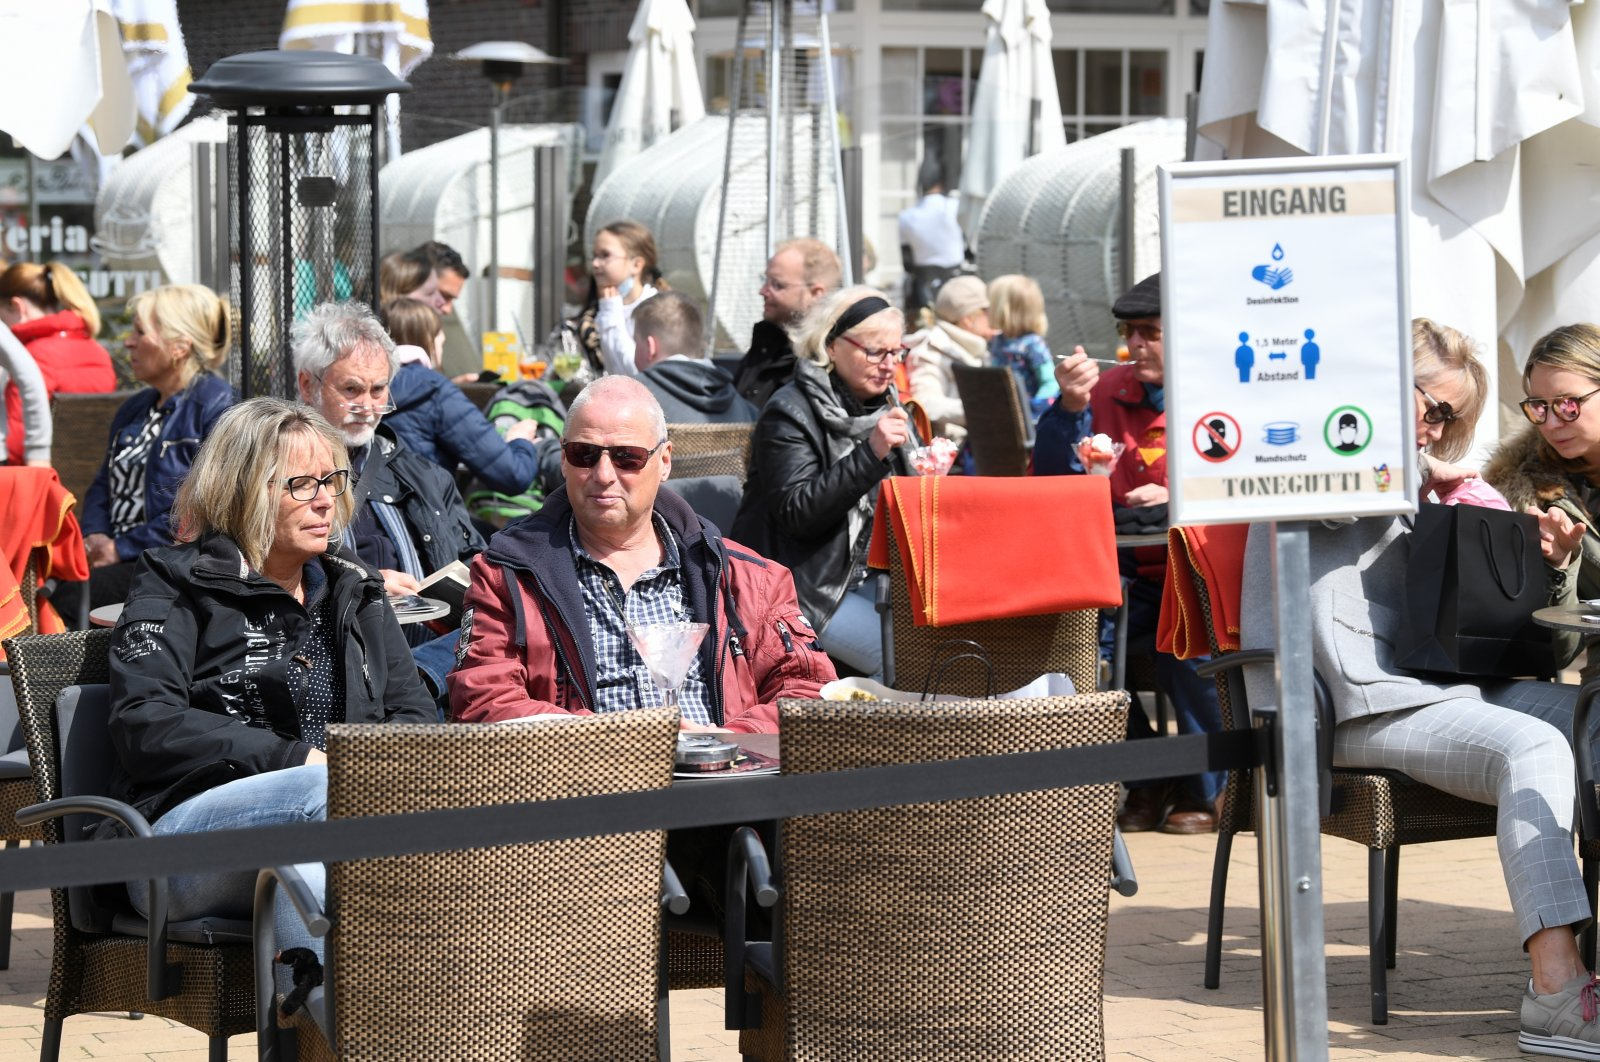 People sit in a cafe amid the coronavirus pandemic at the Baltic Sea resort Timmendorfer Strand, Germany, May 8, 2021. (Reuters Photo)